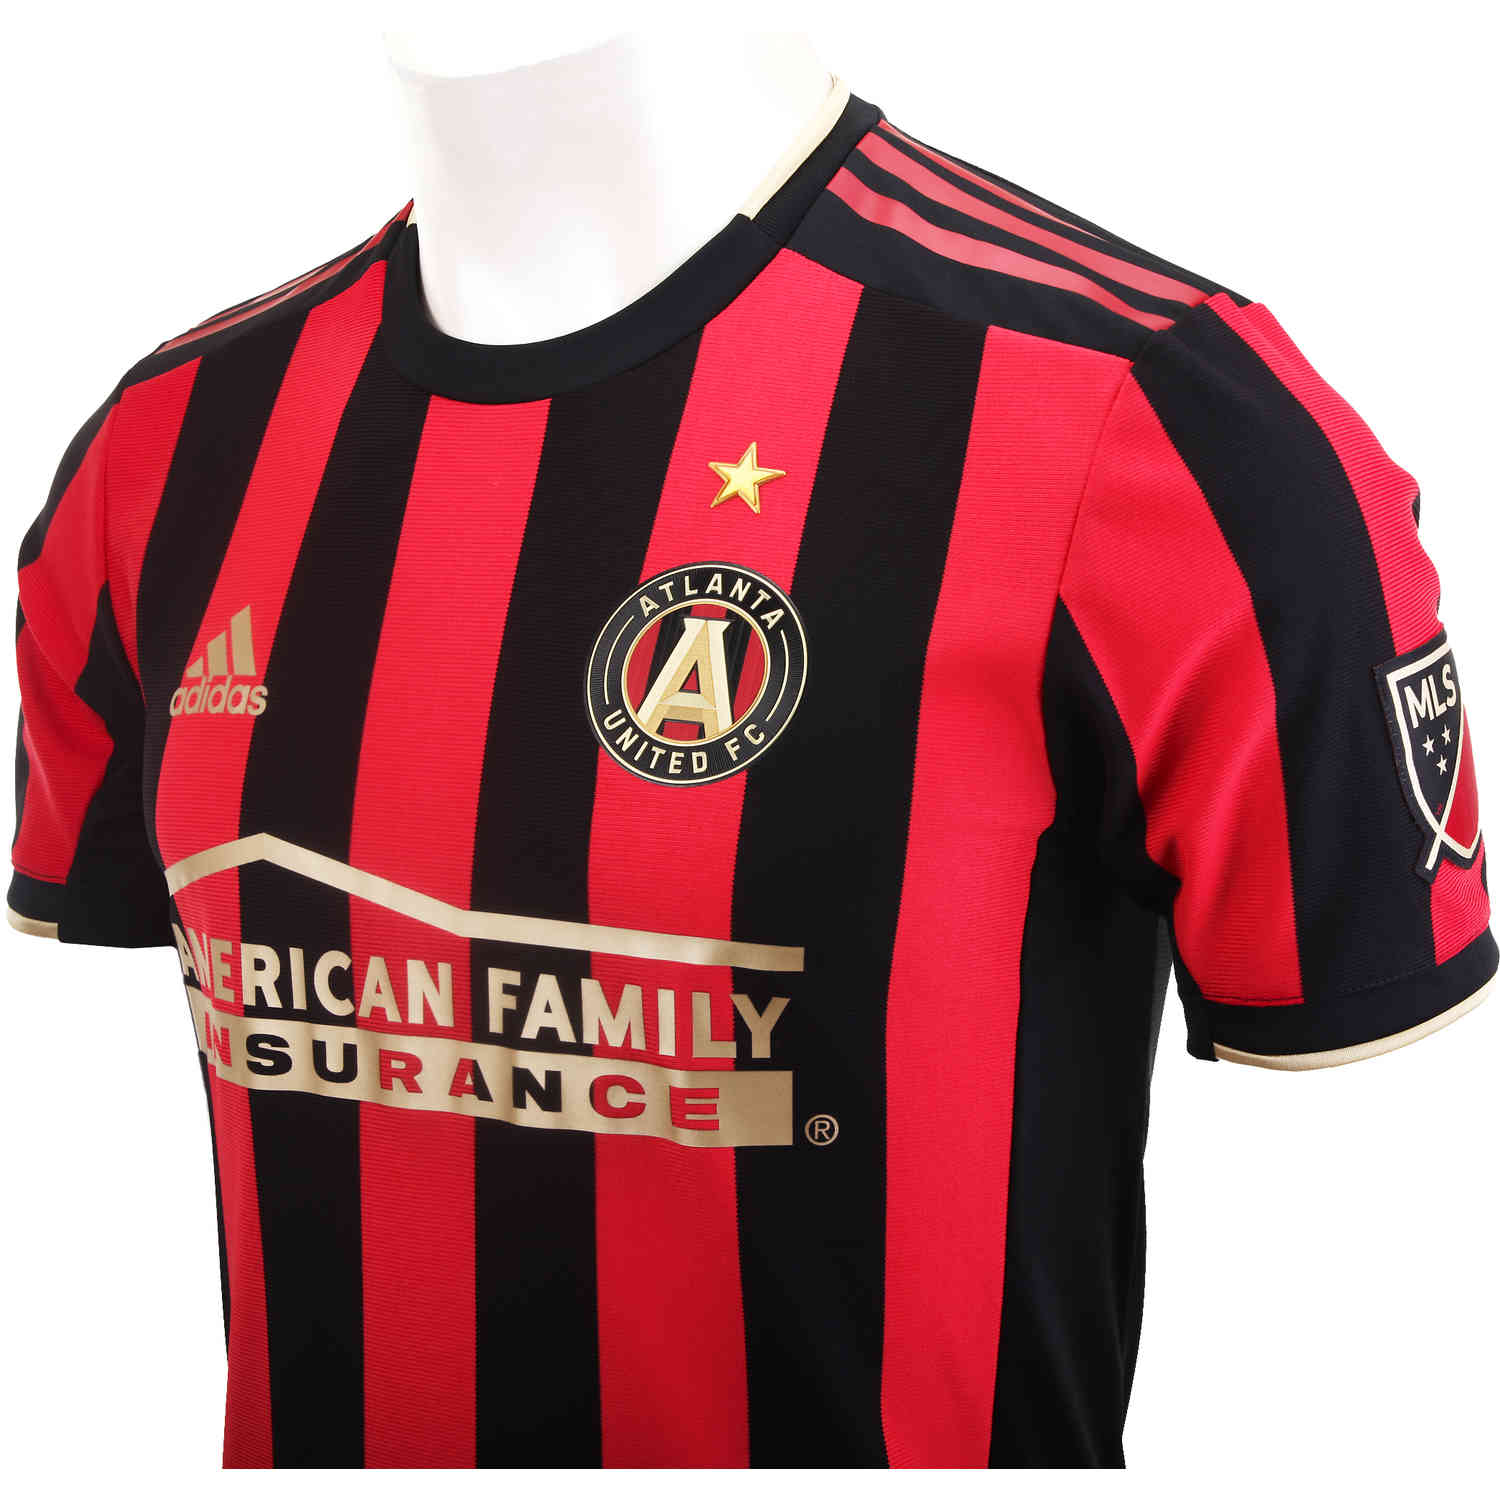 classic fit 44344 bfc37 2019 adidas Atlanta United Home Authentic Jersey - Soccer Master